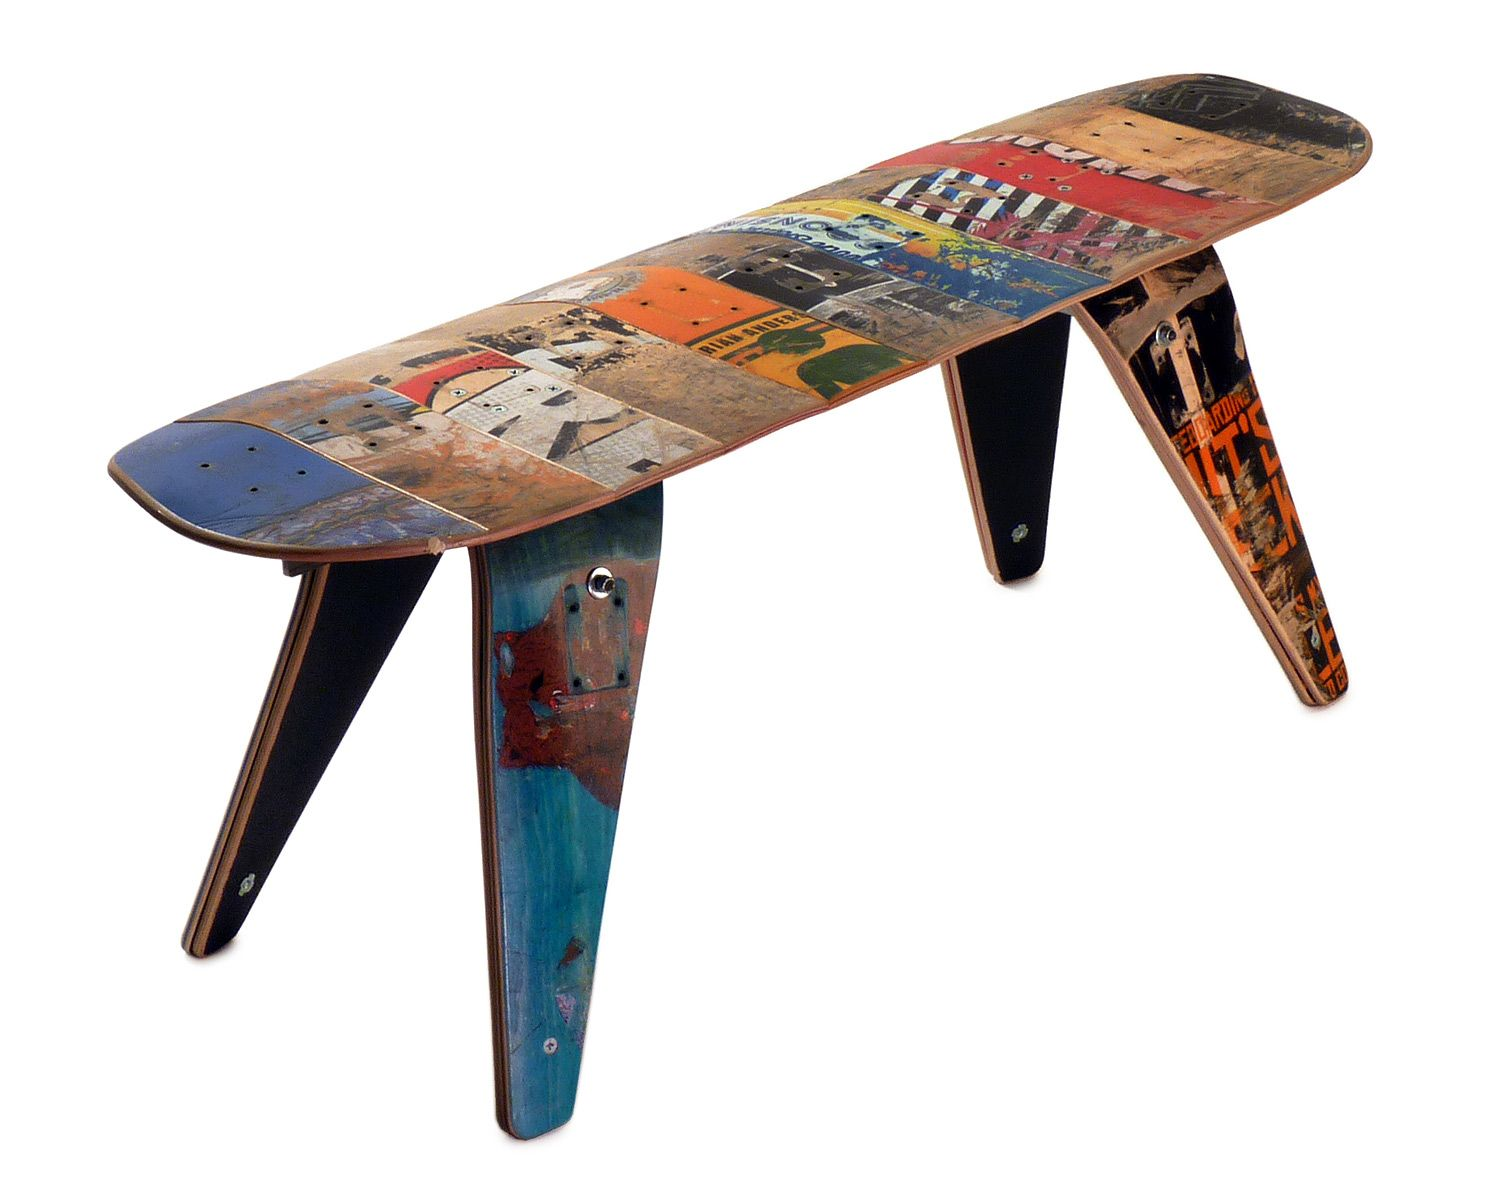 Skateboard Bench Short Skateboard Bench Reclaimed Skate Deck Furniture Handmade Uncommongoods Skateboard Furniture Eco Friendly House Skateboard